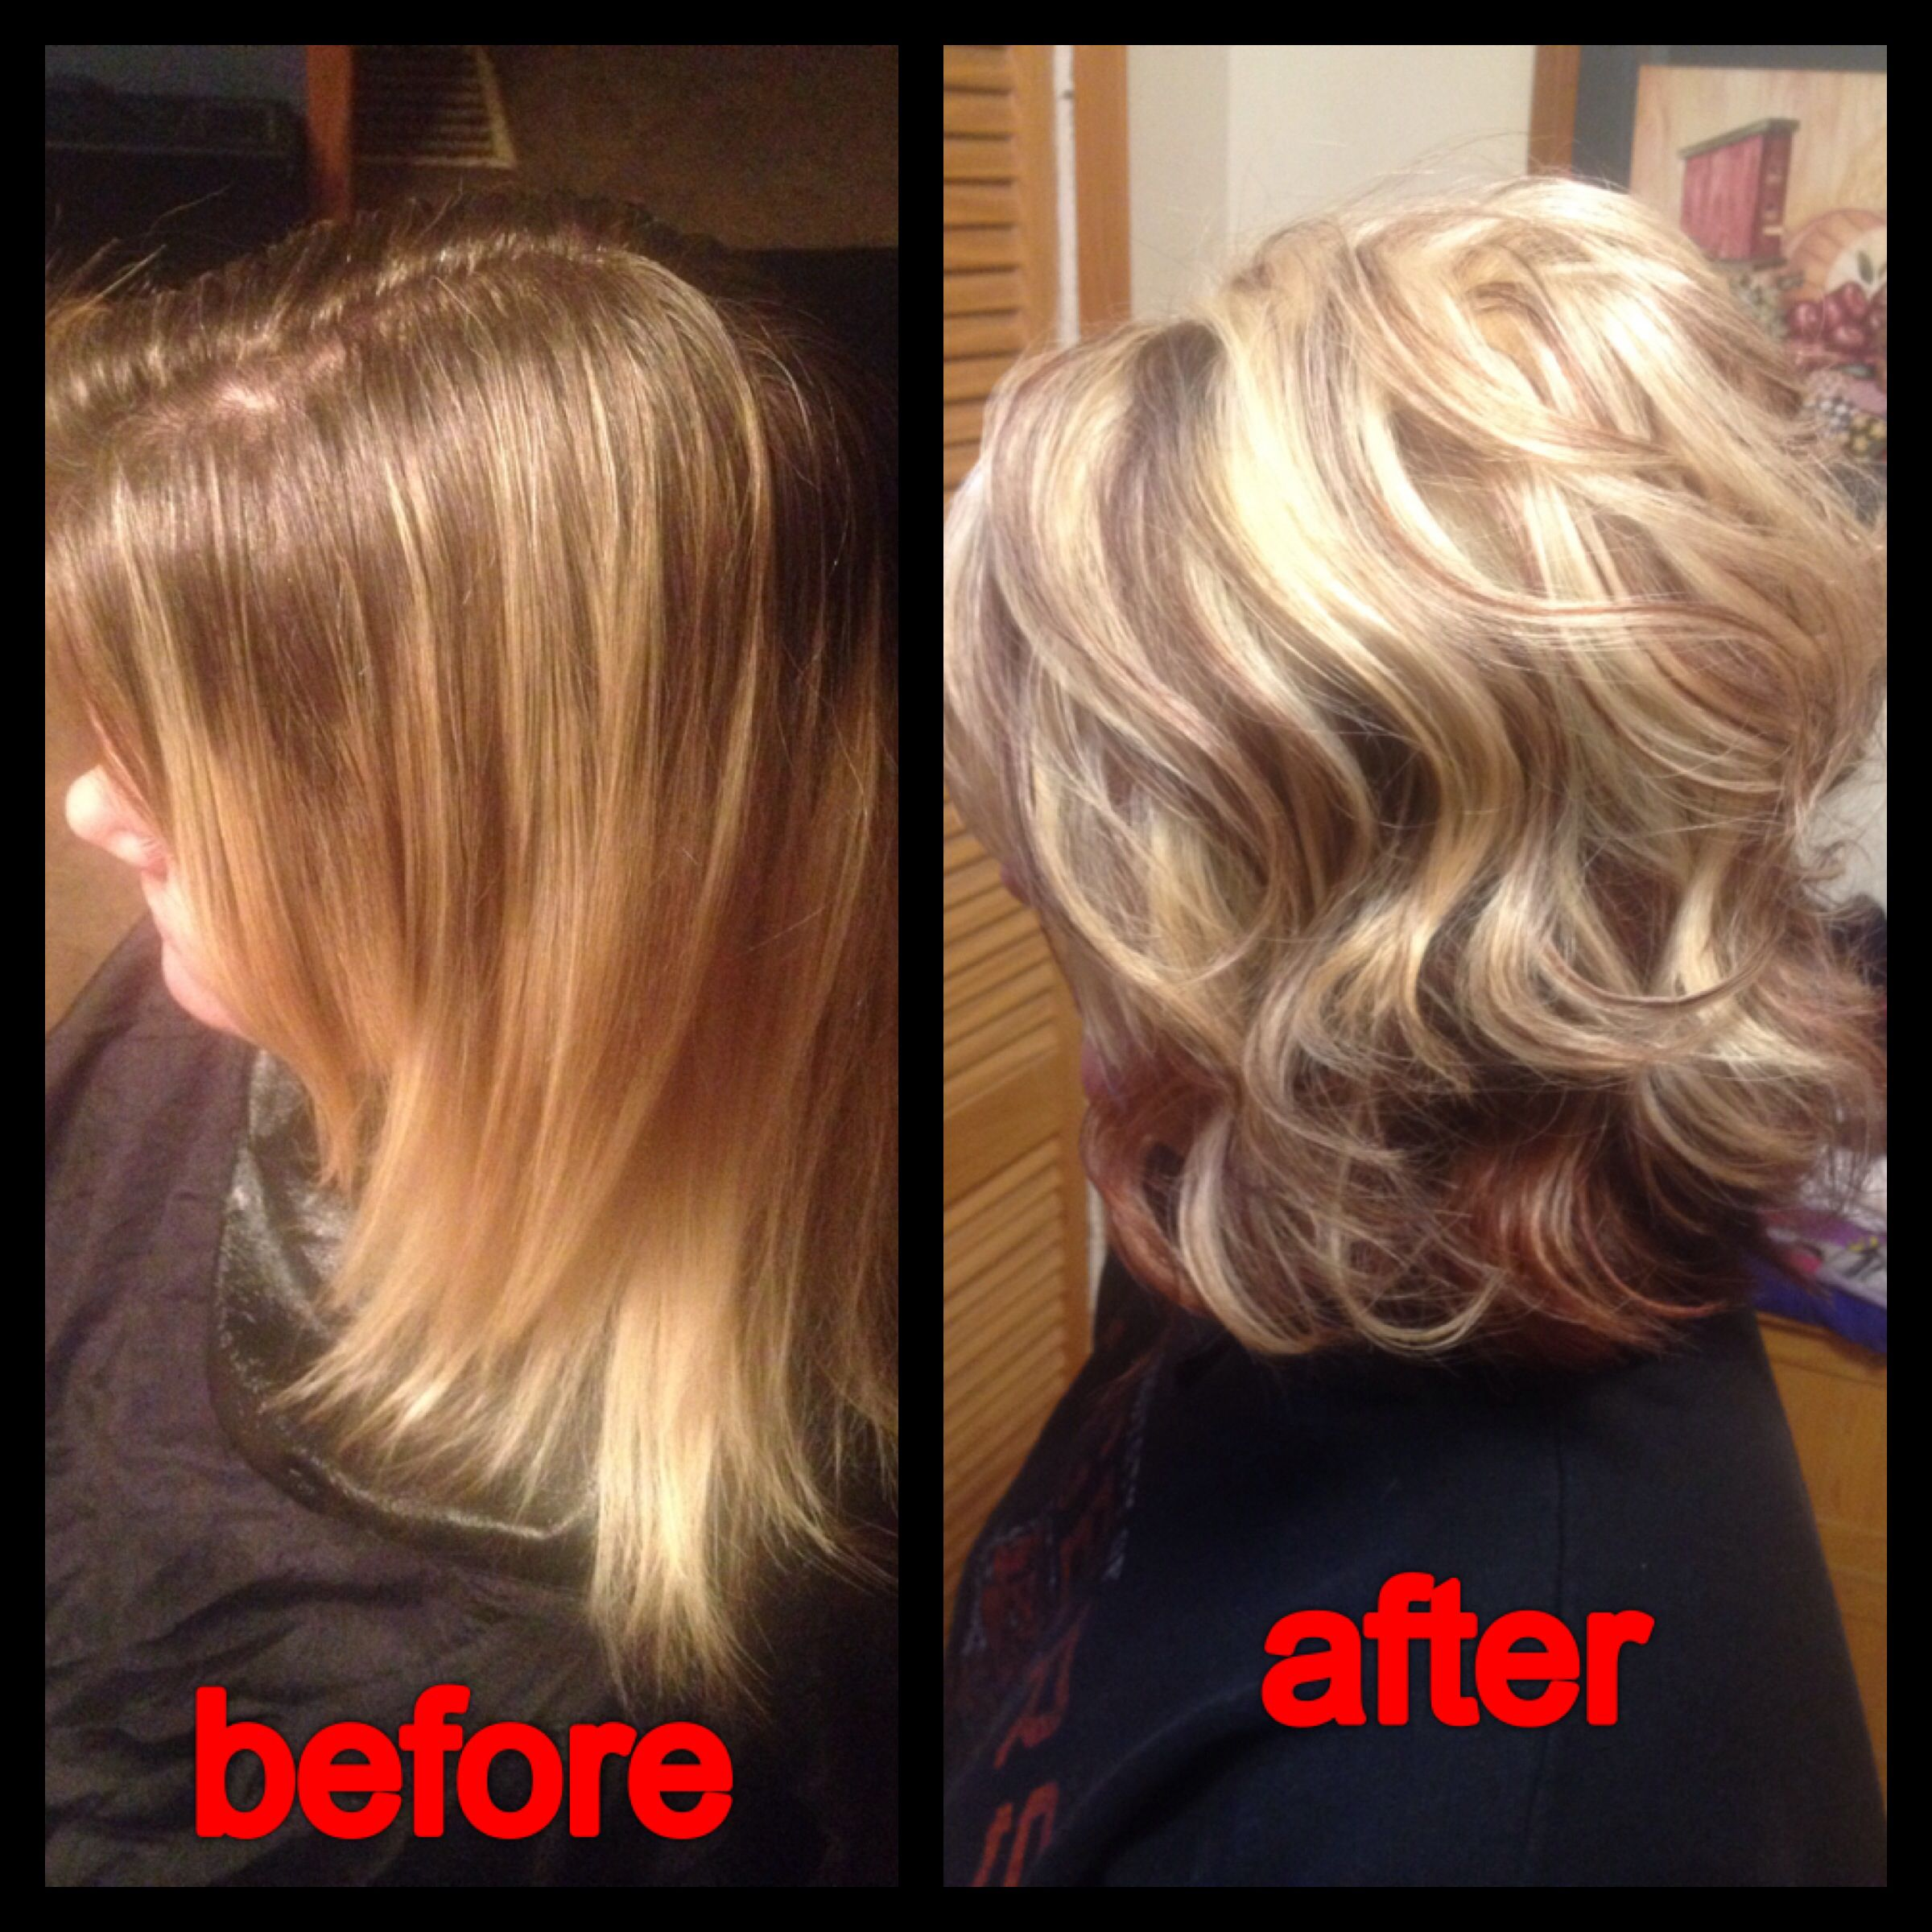 Before had about 3 inches of roots with a brassy blonde but now a